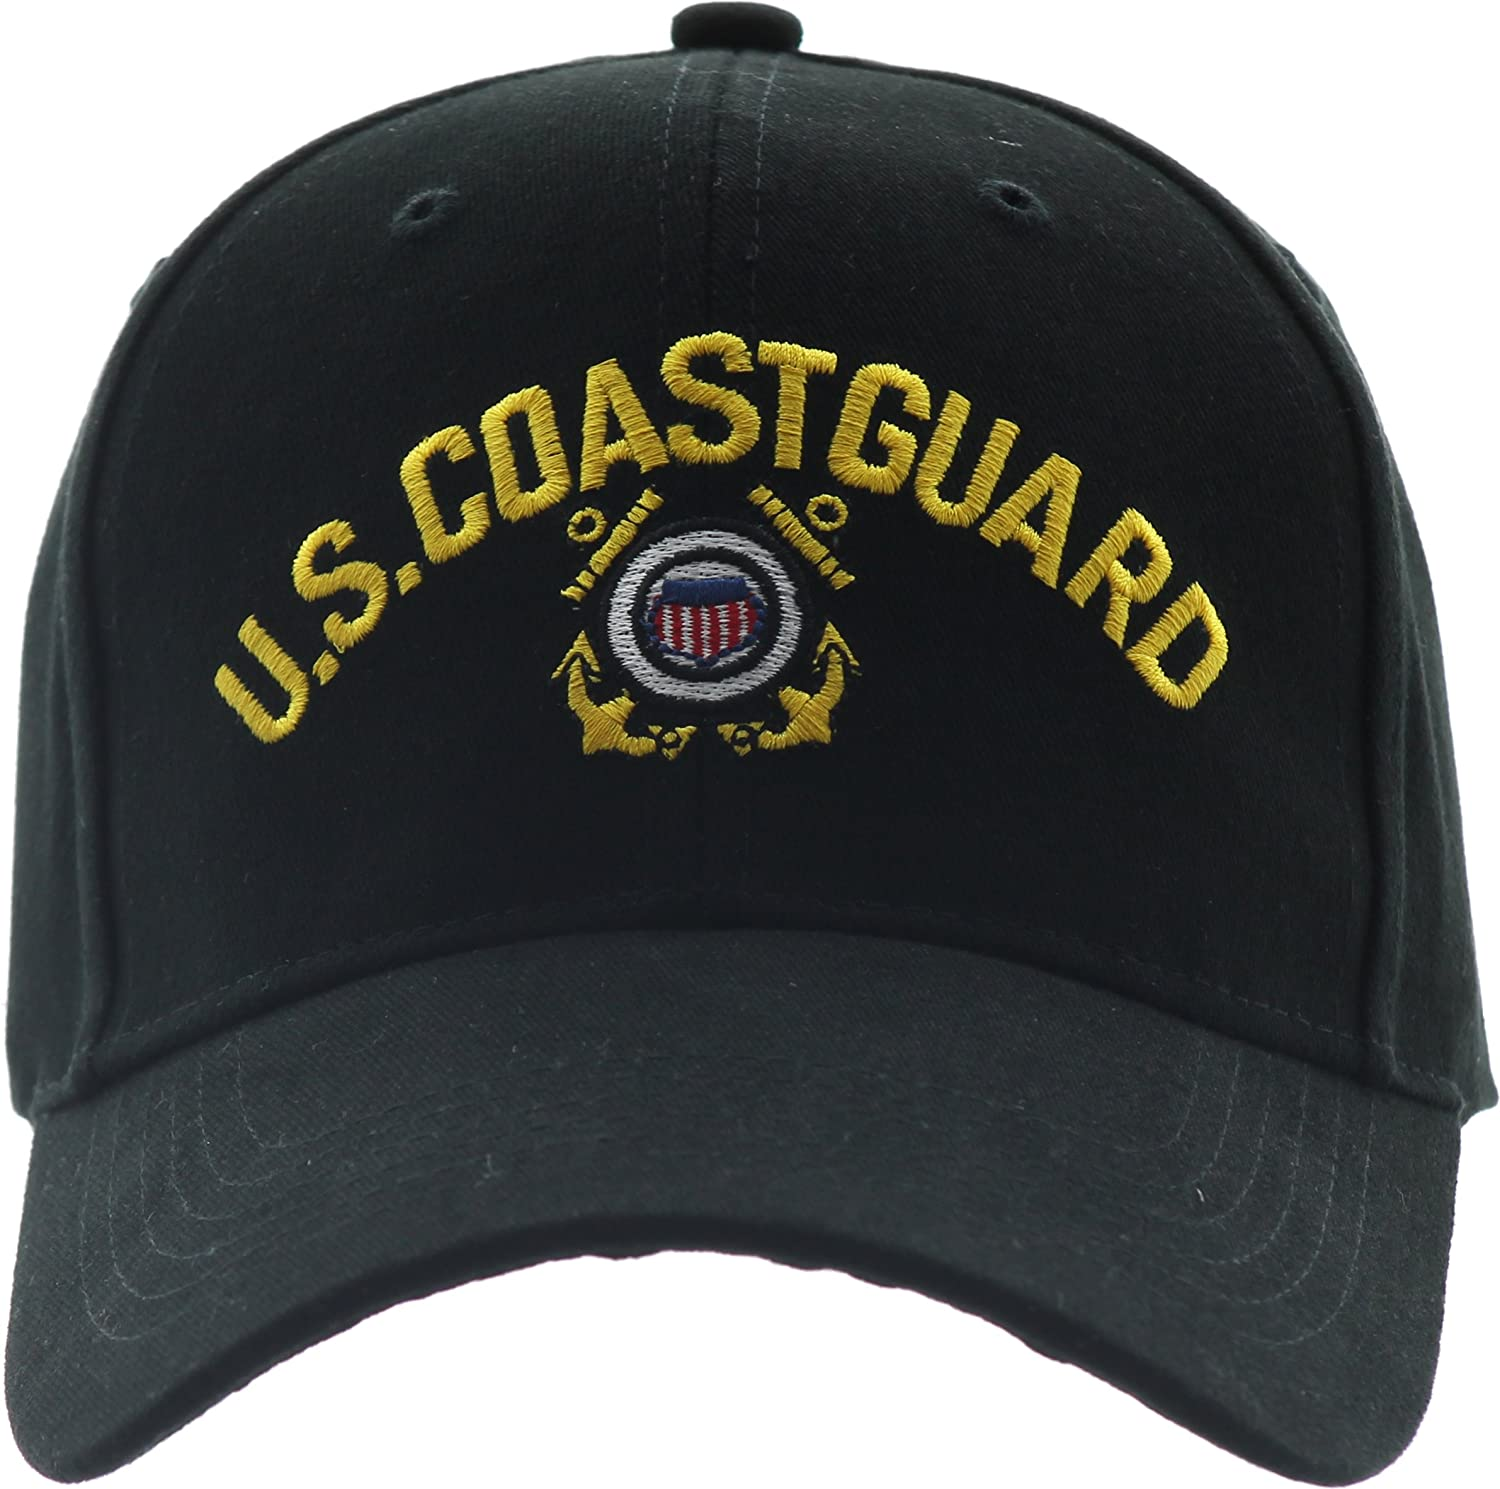 3b17df8e7a0 Amazon.com   Army Universe Black US Coast Guard USCG Logo Baseball Cap Hat  with Official Pin   Sports   Outdoors